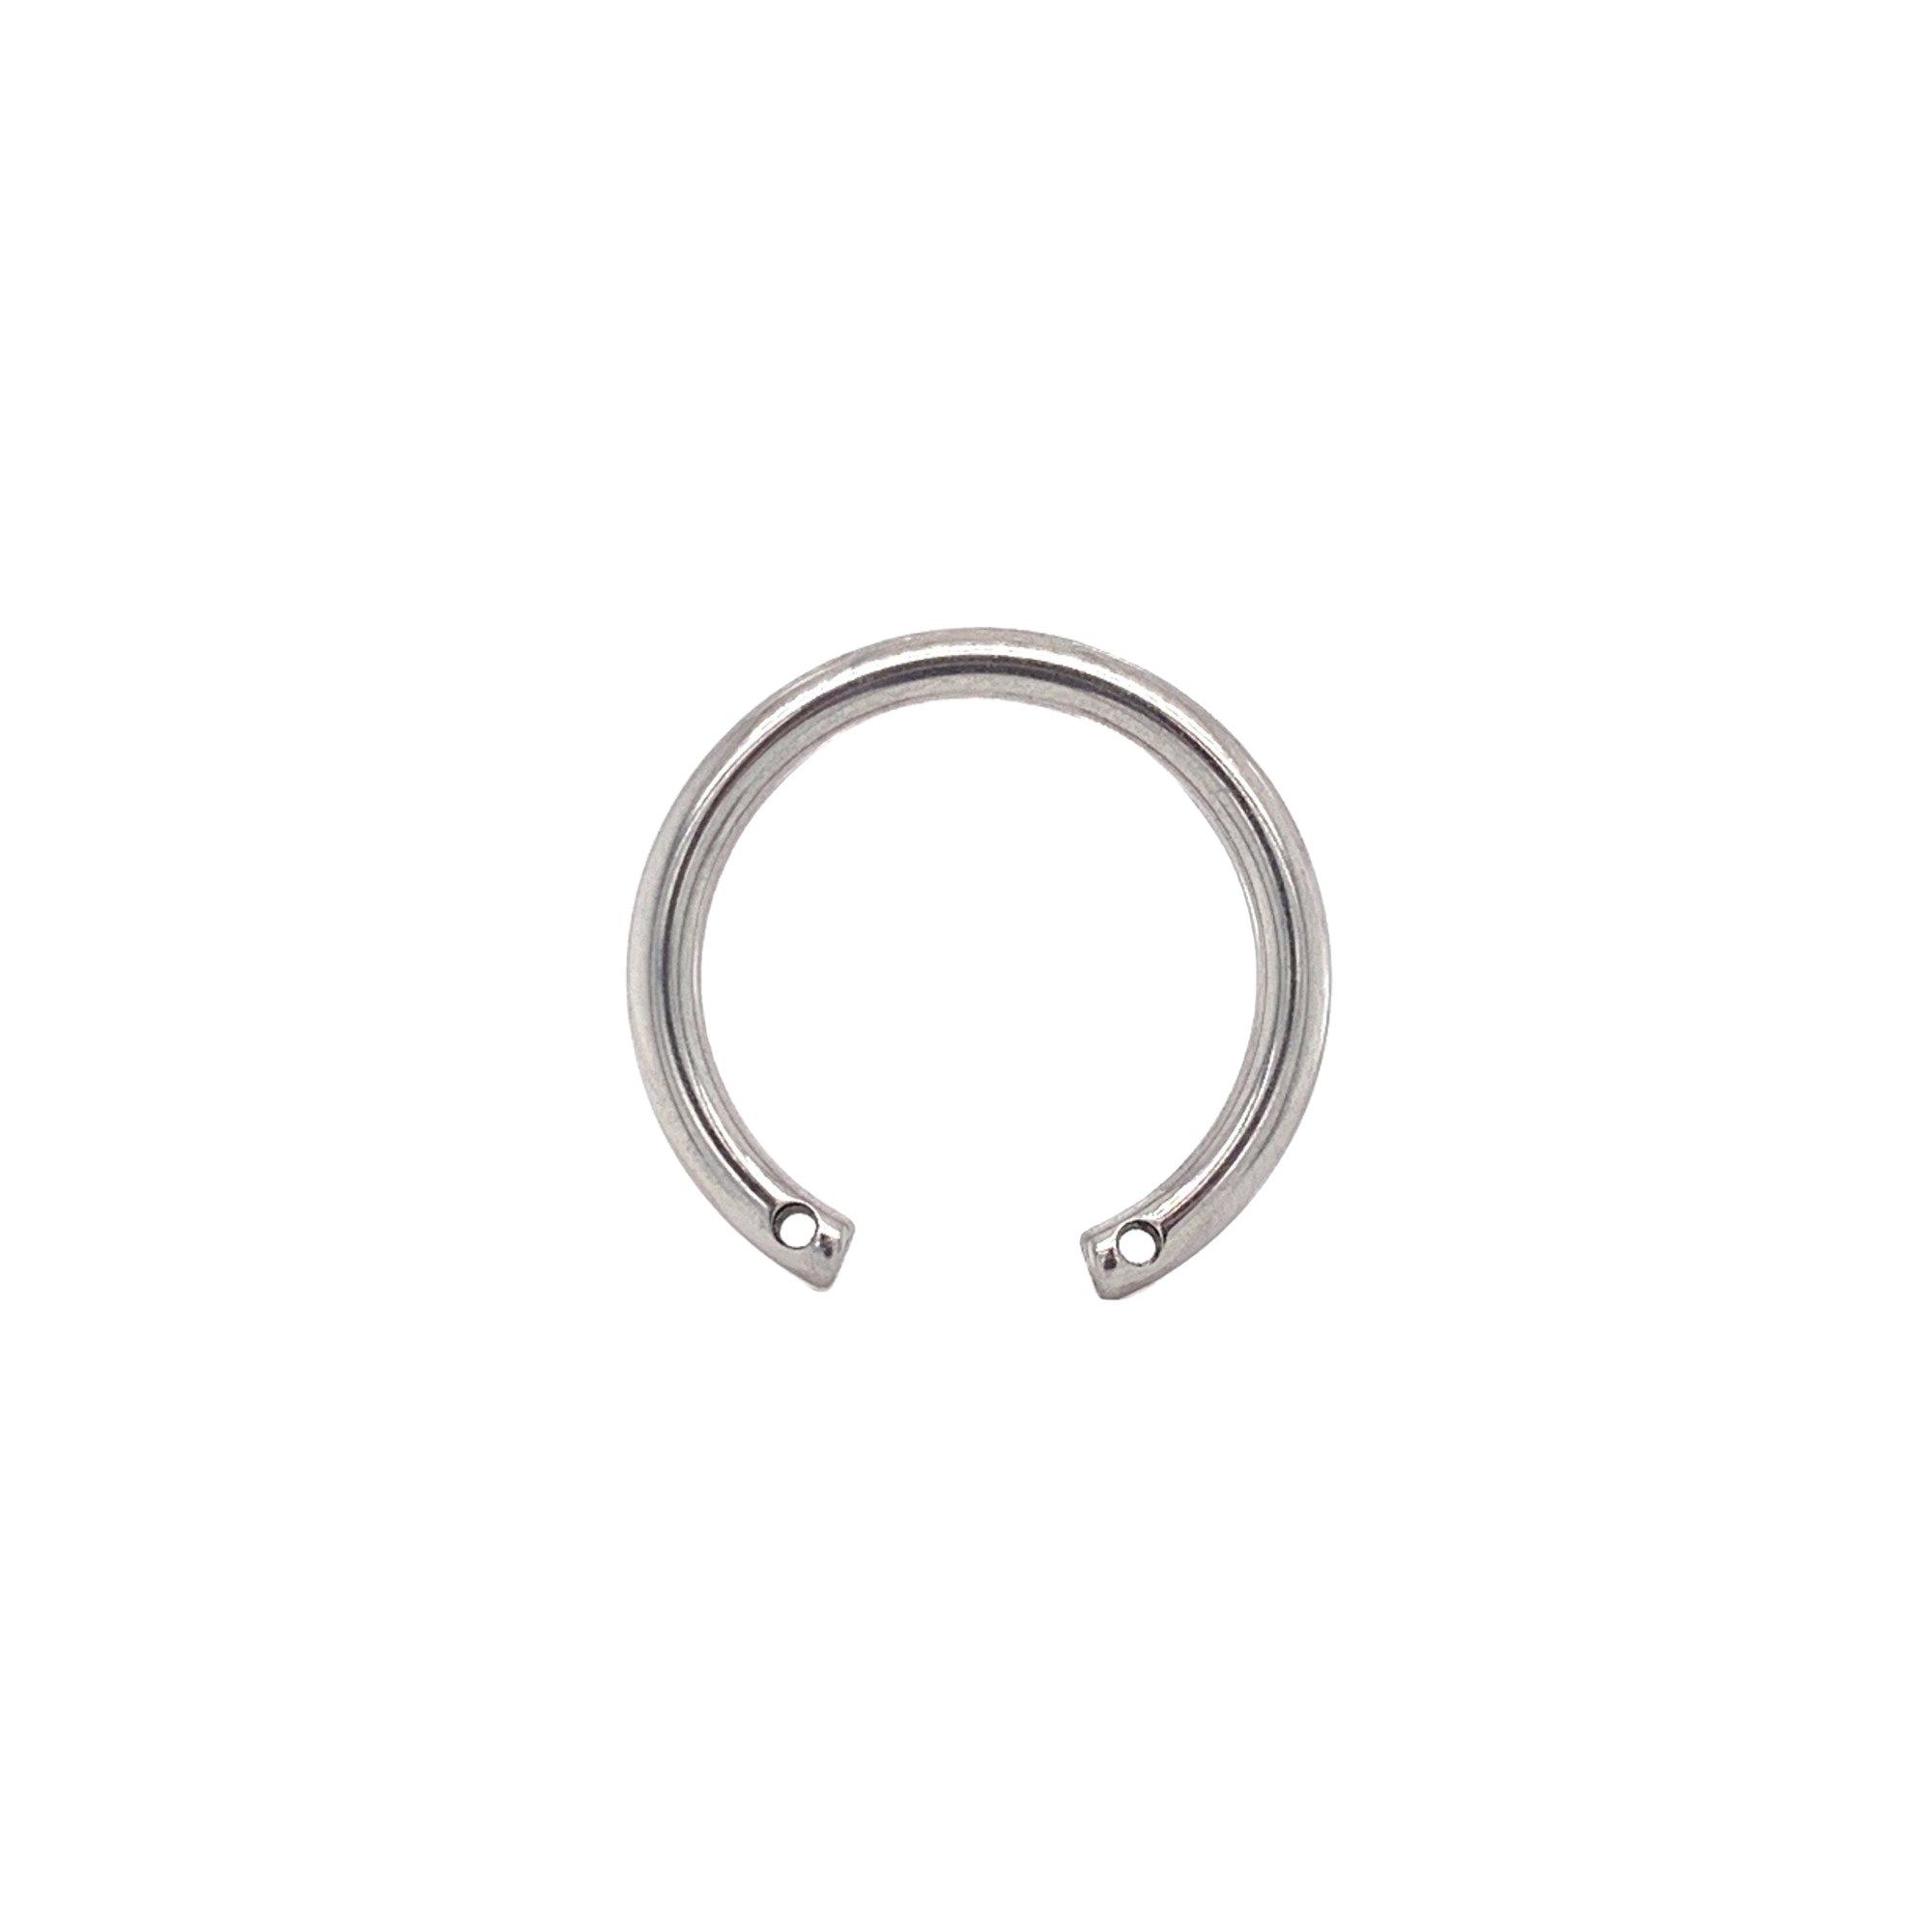 Circular Barbell With 2 Front Facing Threads (Shaft Only) 12Mm / 0.9Mm Curved